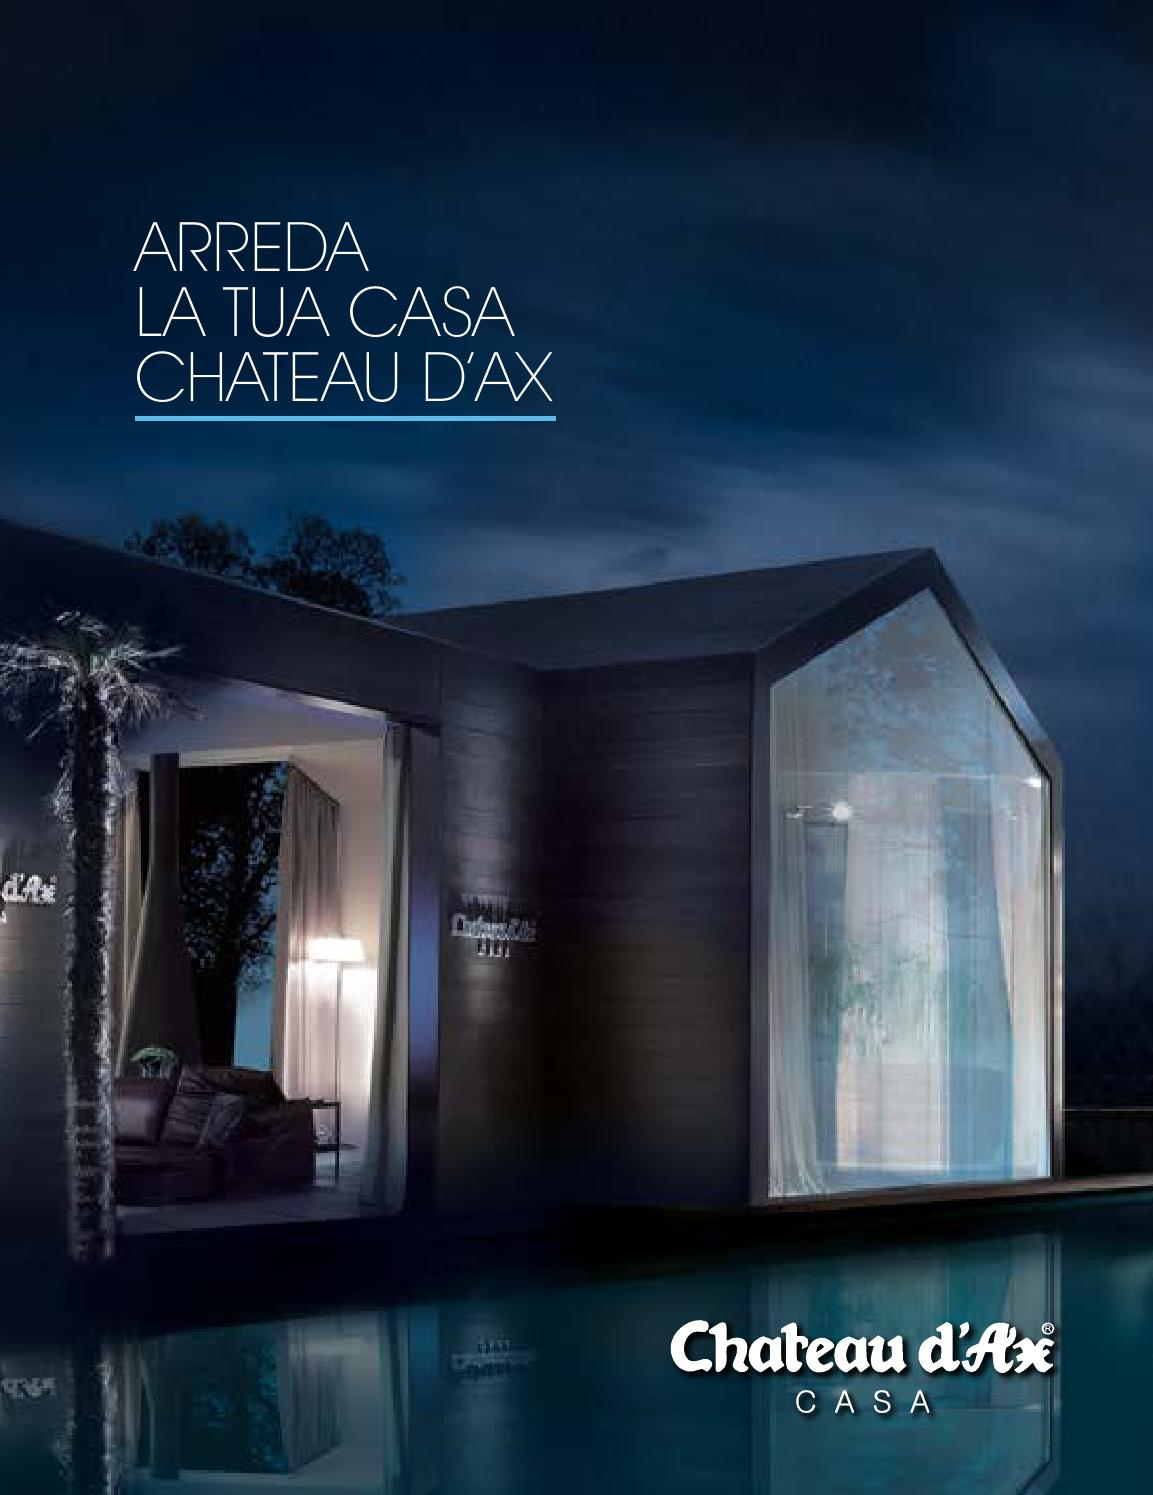 Catalogo chateau d 39 ax marzo 2015 by mobilpro issuu for Offerte arredamento completo chateau d ax